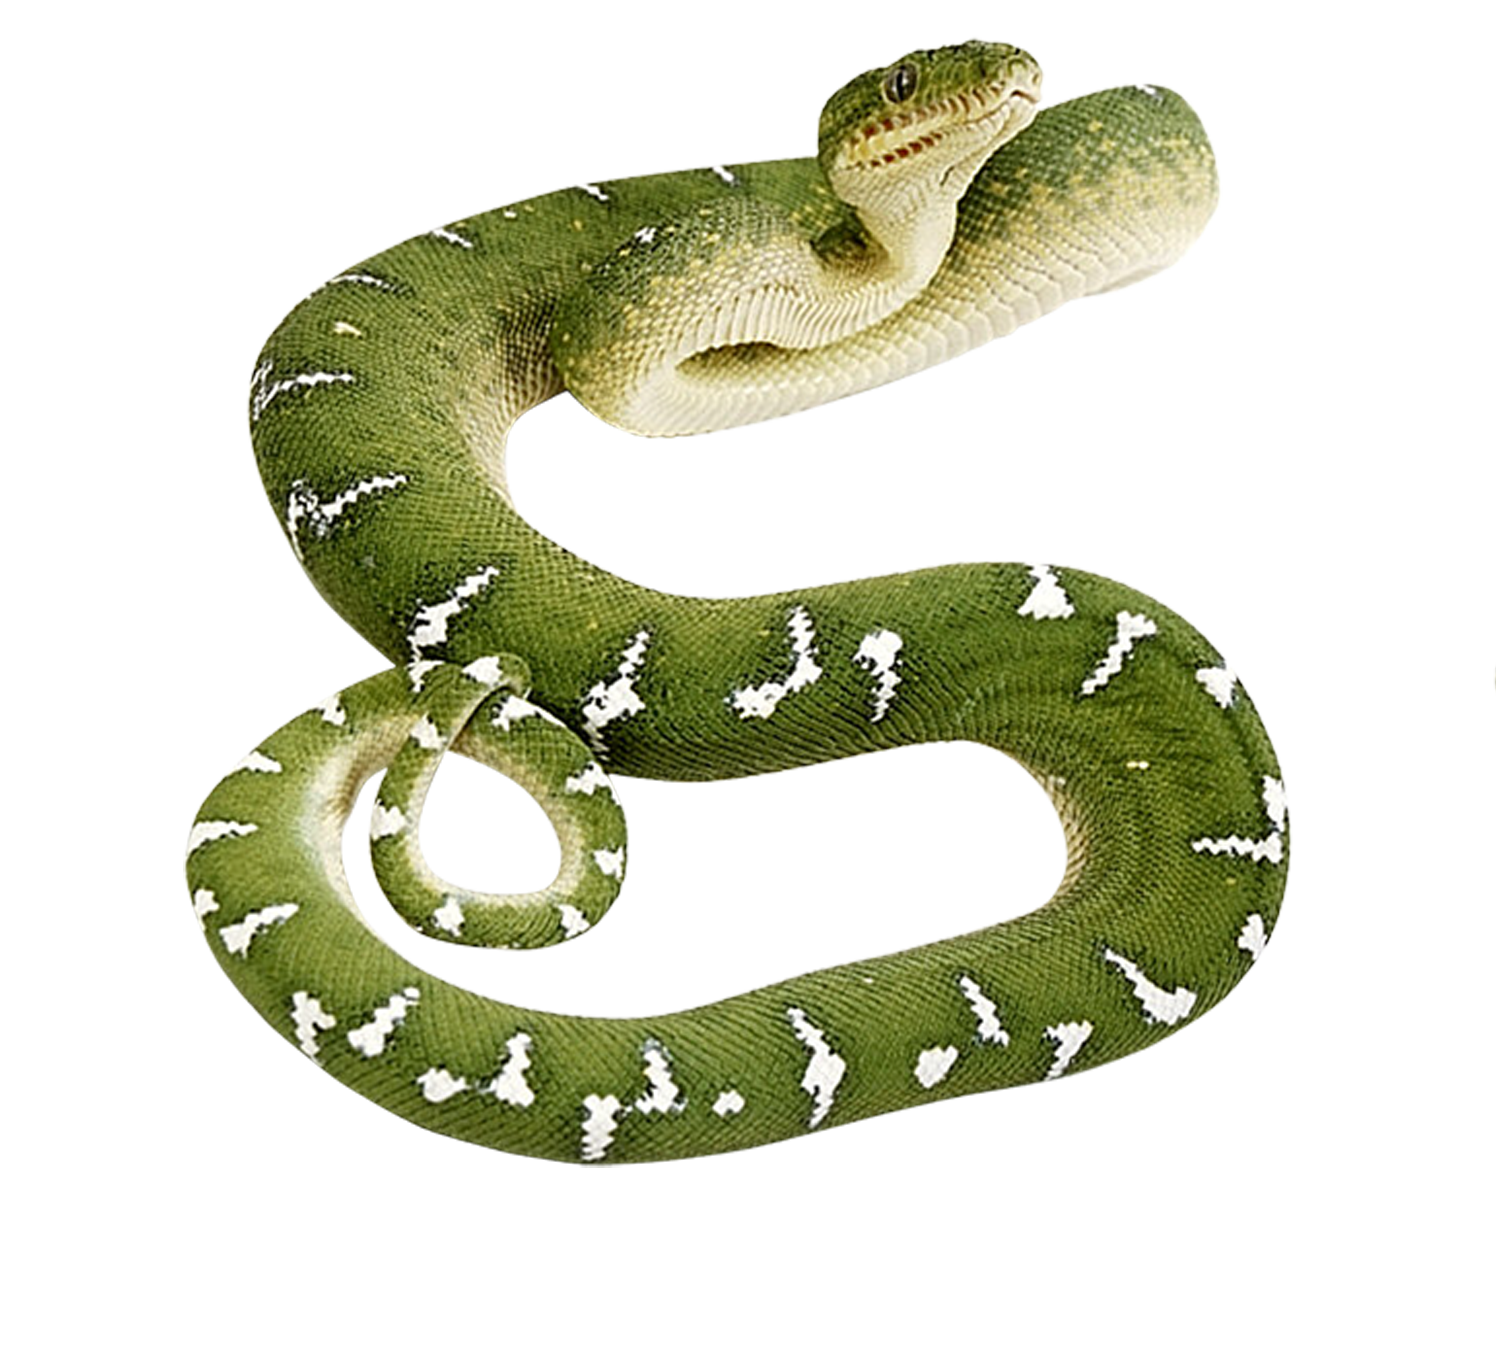 Pin By Veronica On Png Snake Png Image